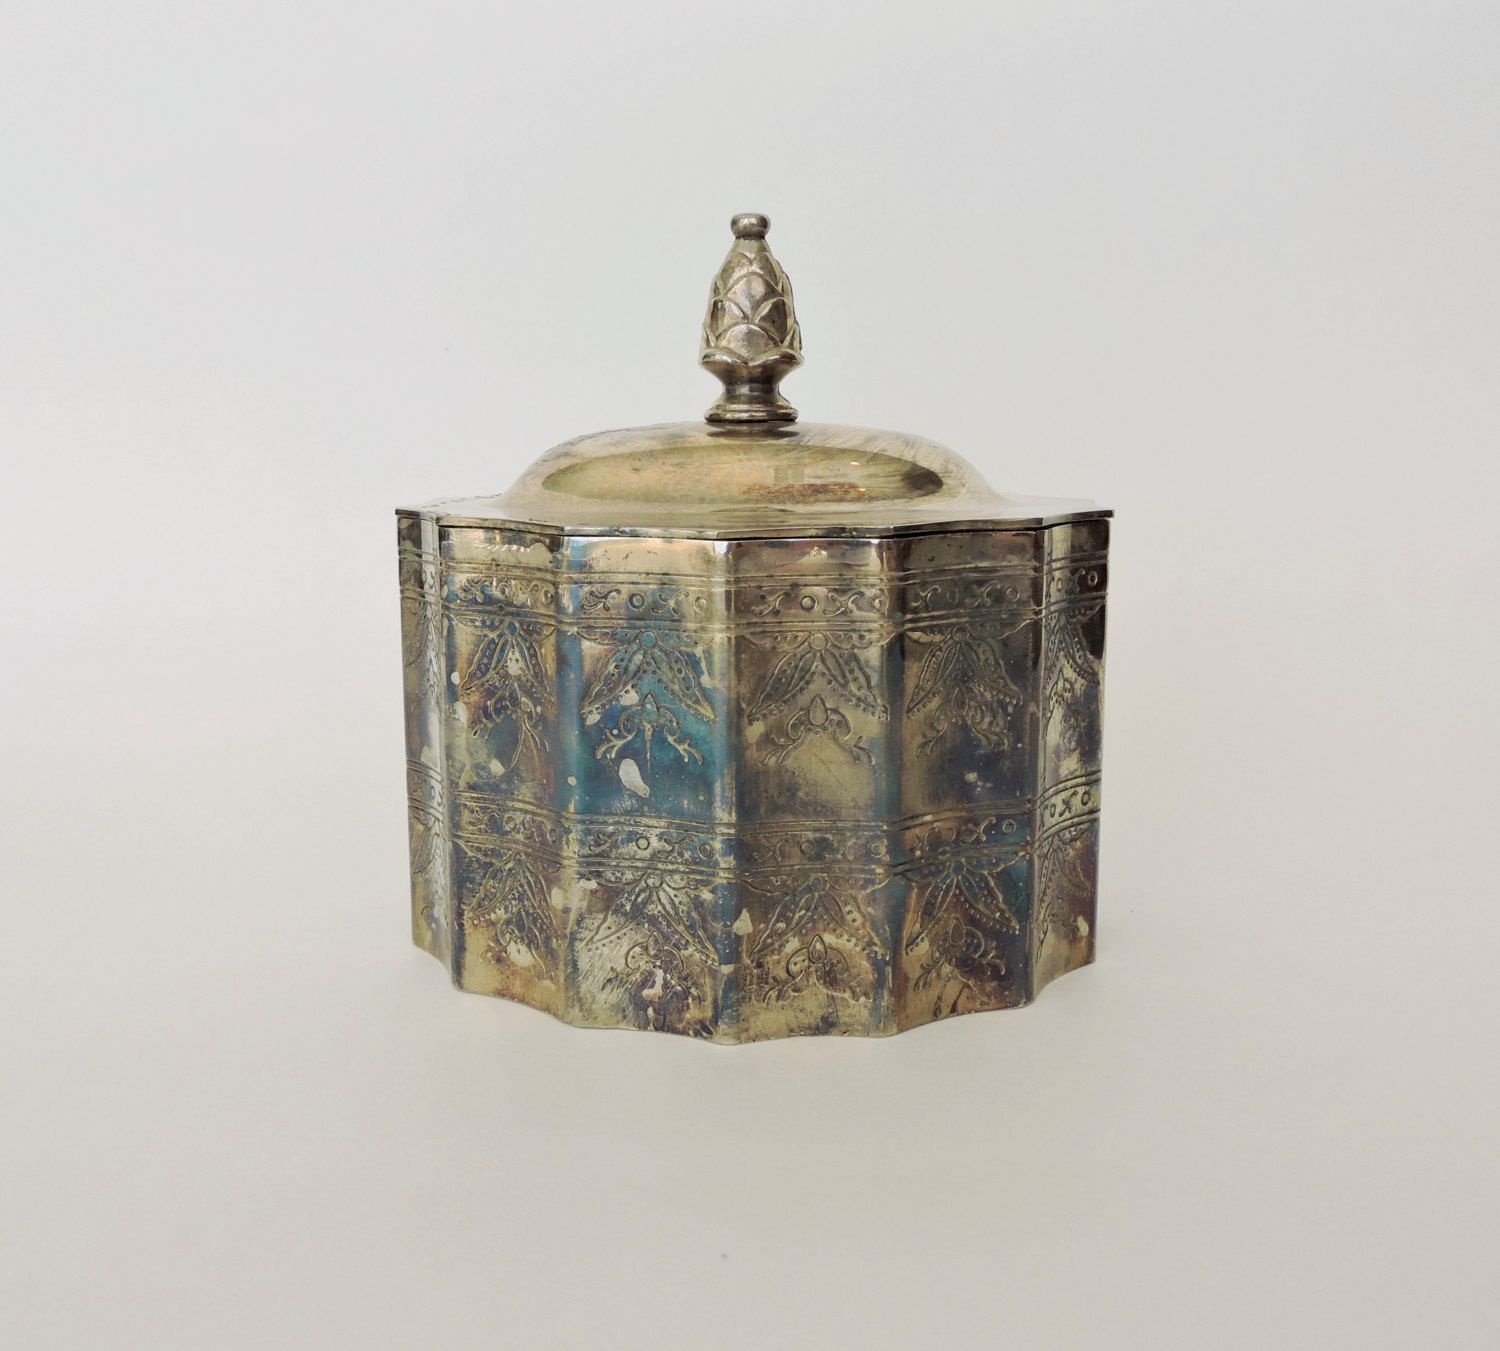 Vintage Silver Jewelry Box Lidded Godinger Silver Plated Trinket